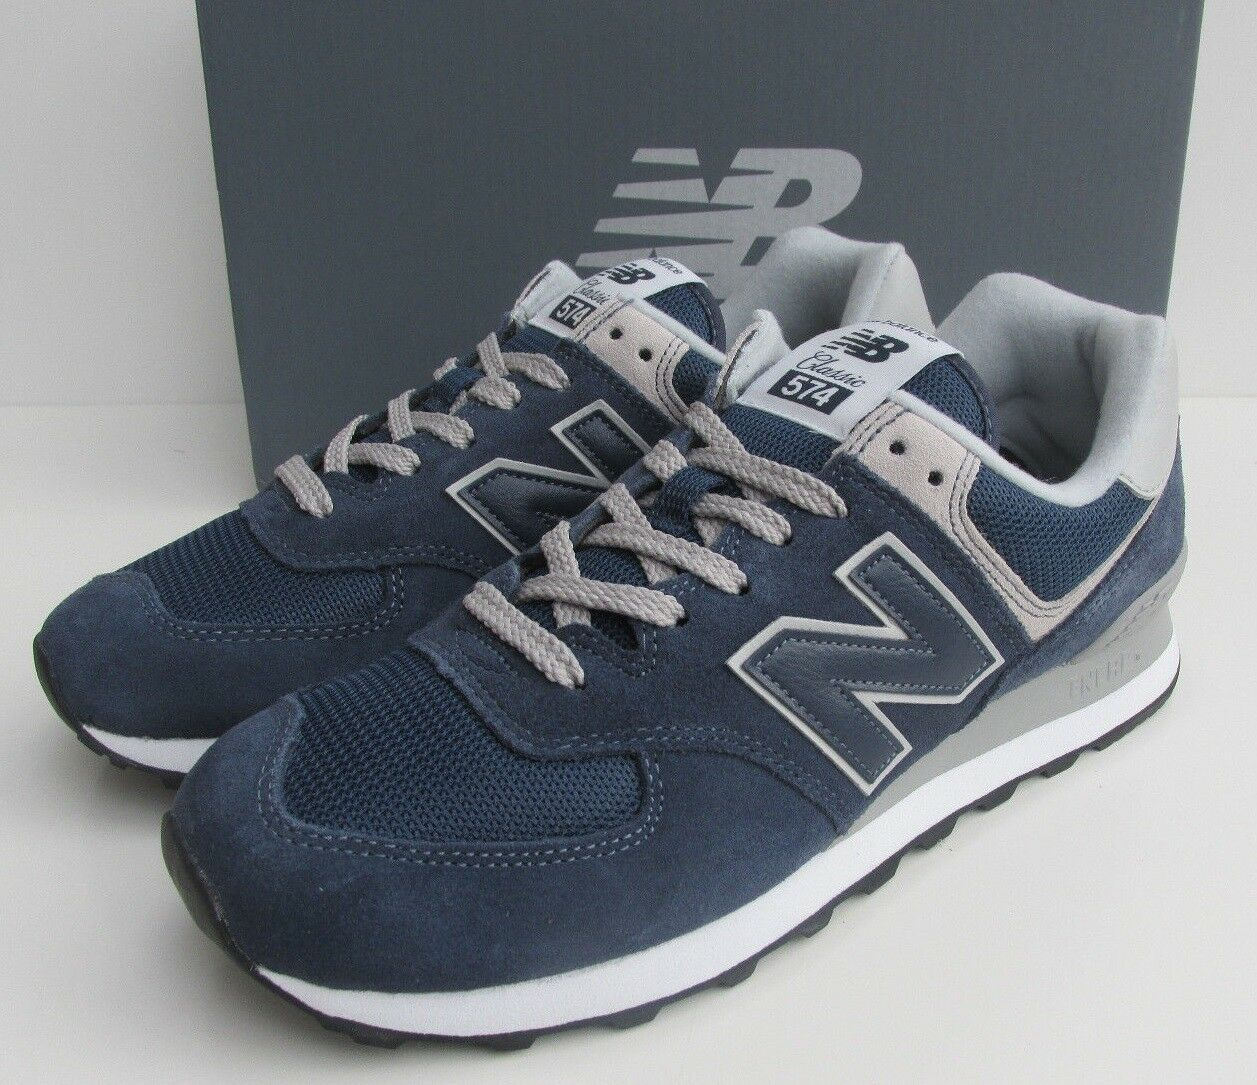 NEW IN BOX Size 12.5 New Balance 574 v2 men's navy bluee sports trainers,